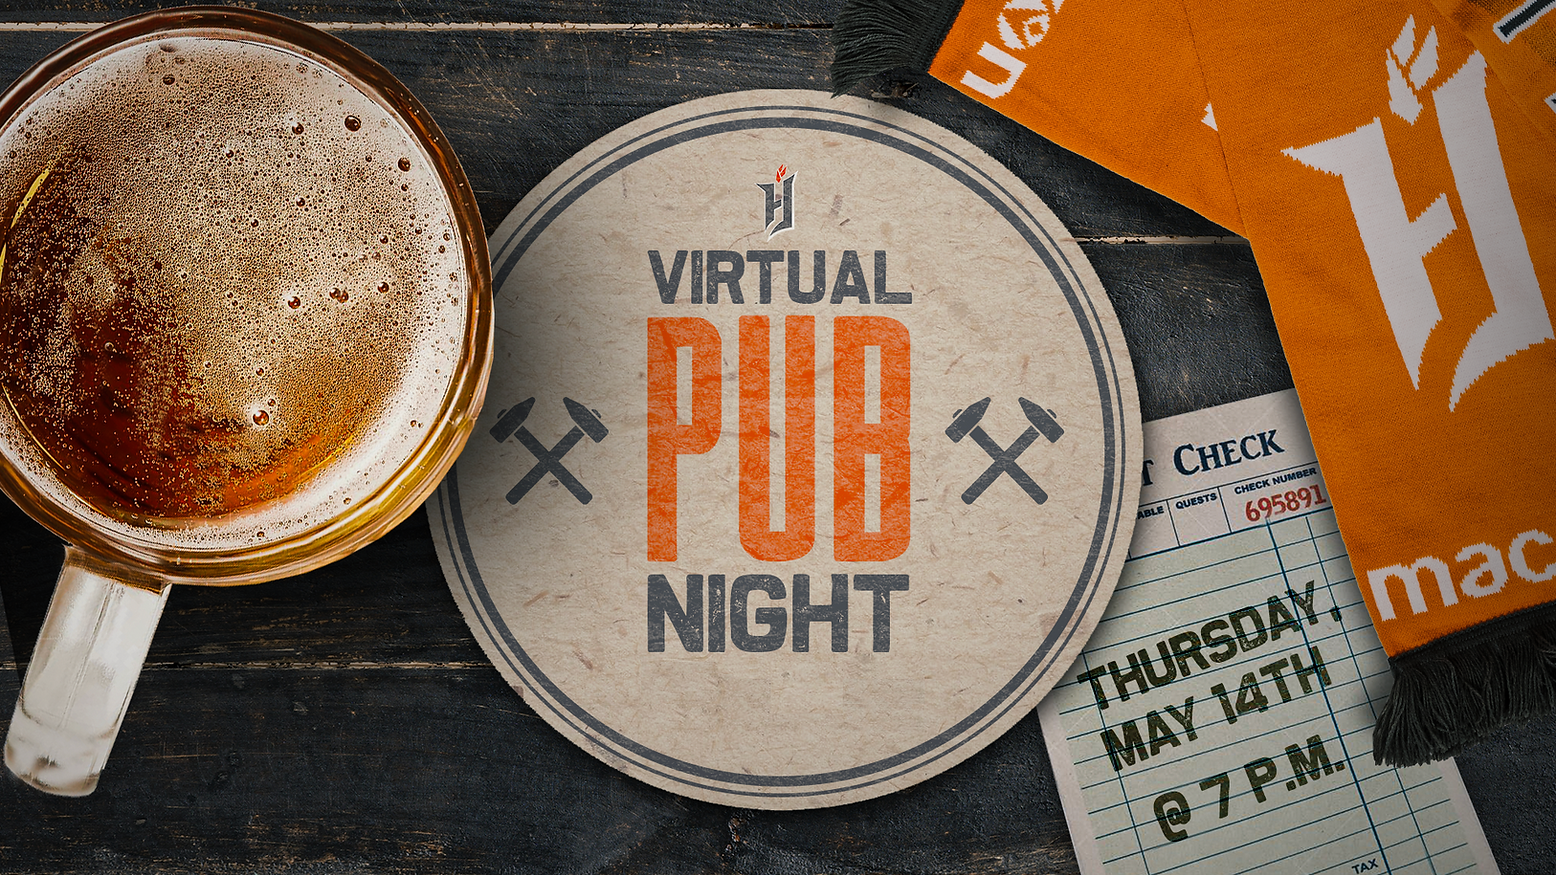 Pub-Night-Graphic-16x9.png